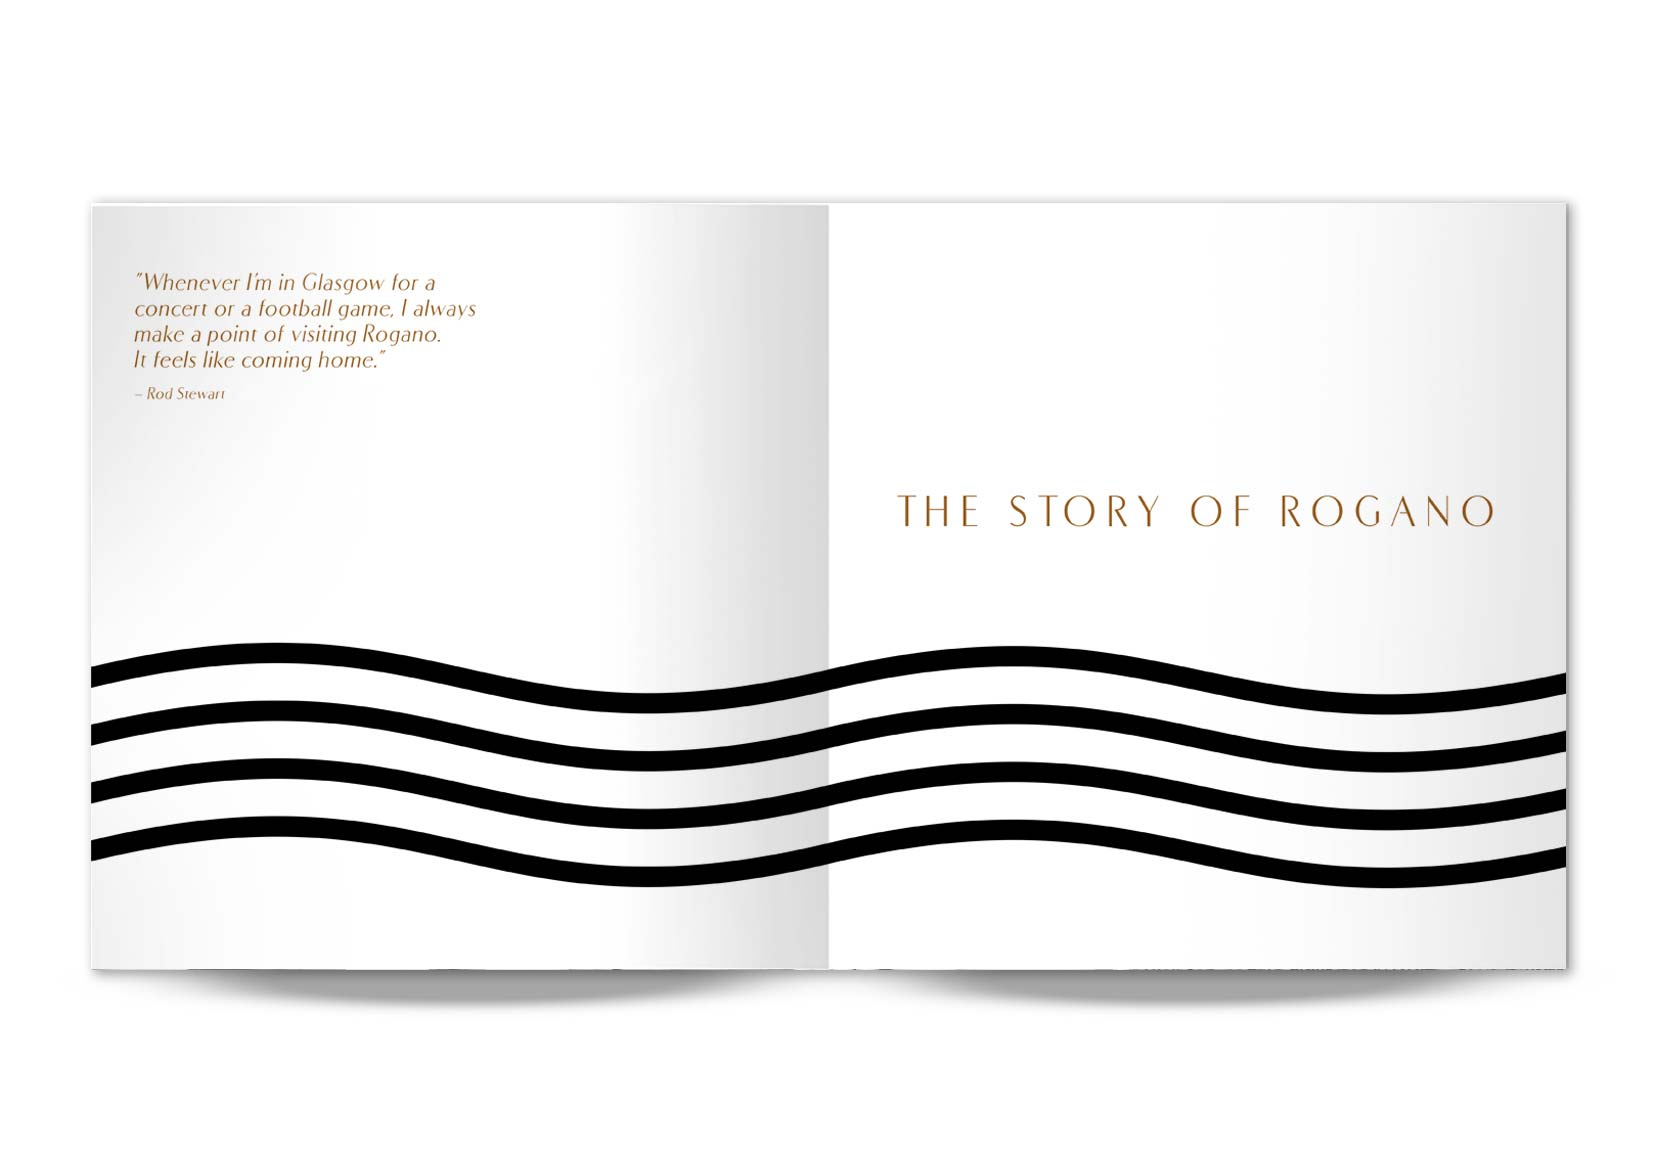 Rogano_book10_richardbudddesign_web.jpg